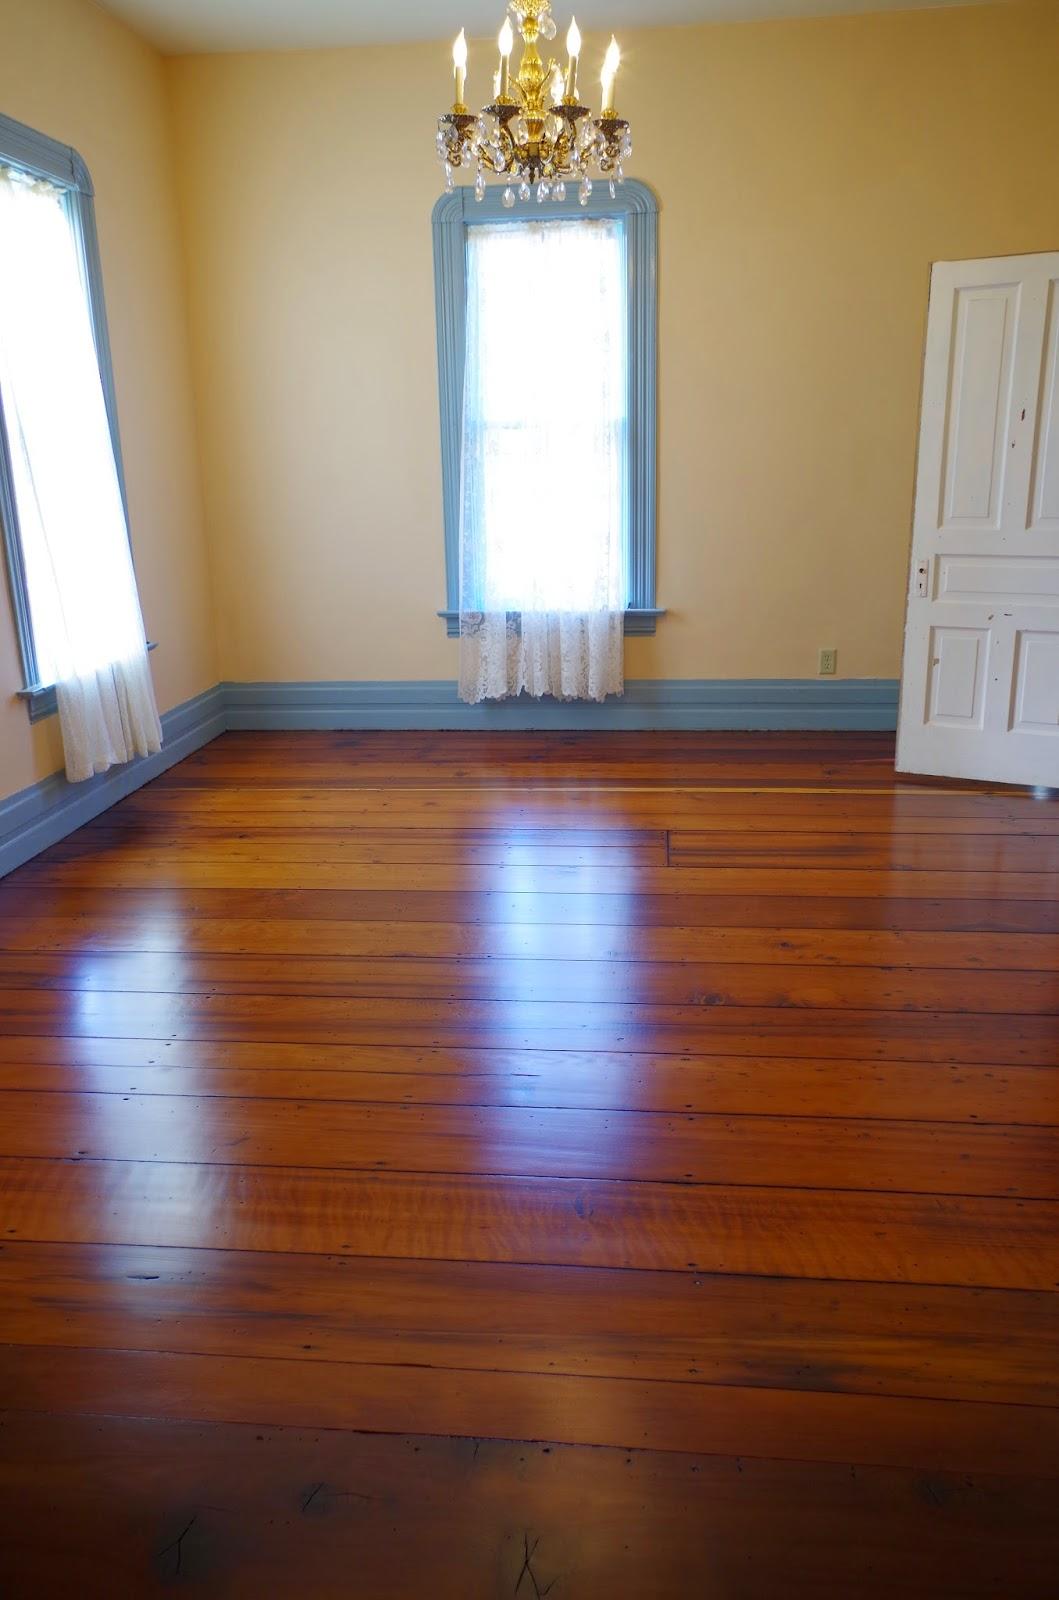 The wide plants show off the old growth redwood that makes this house  really shine. It helps tie the house the north coast and the ancient forest  that are ... - Eureka Victorian Restoration: Redwood Floors €� From Subfloor To